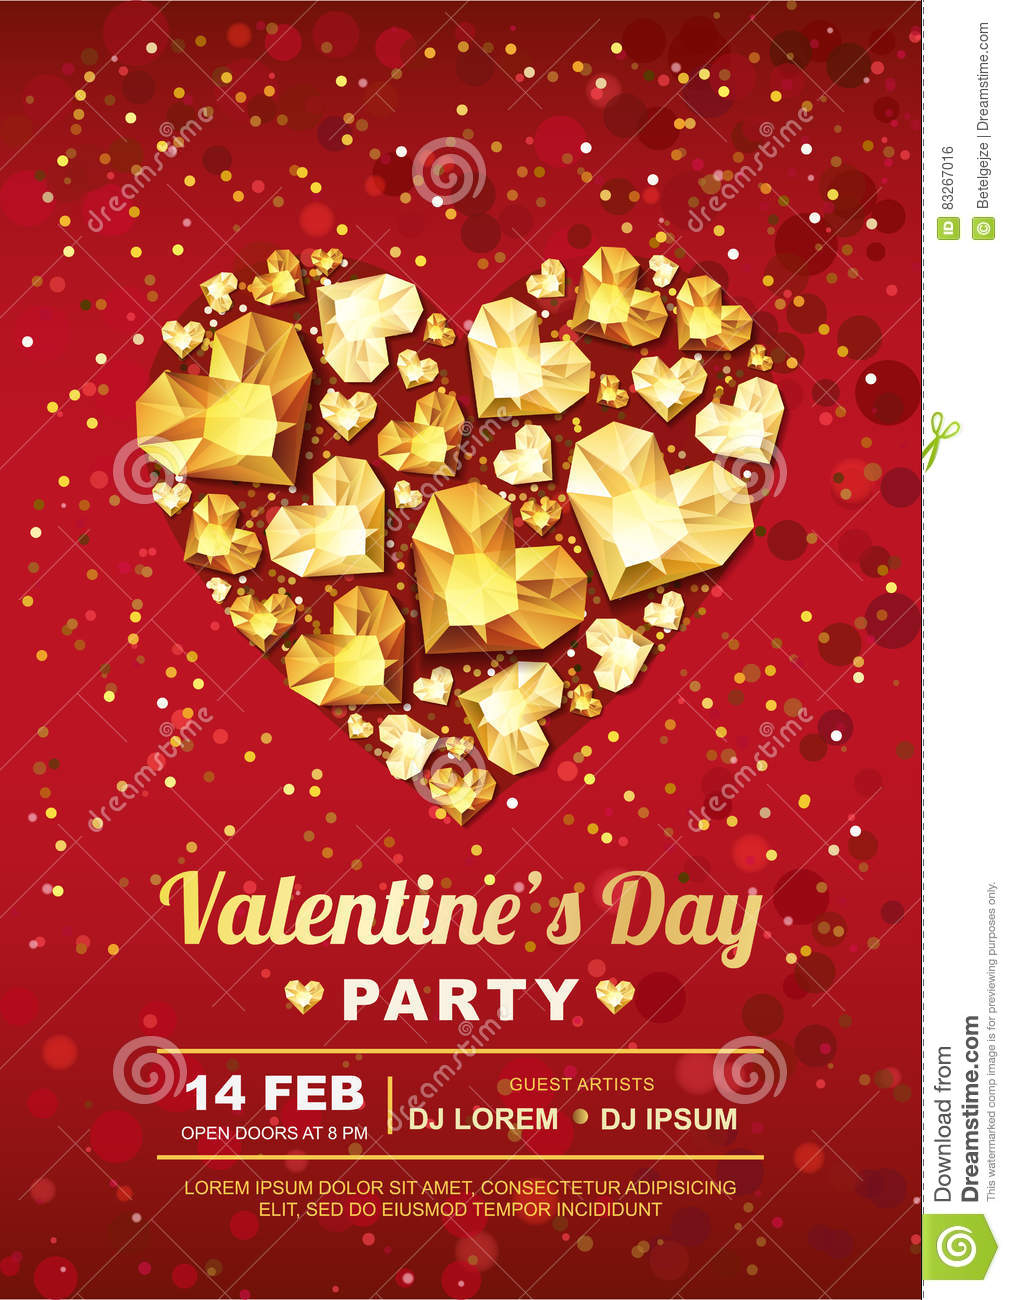 Valentines Day Party Poster Design Template Gold Gem Heart On Red